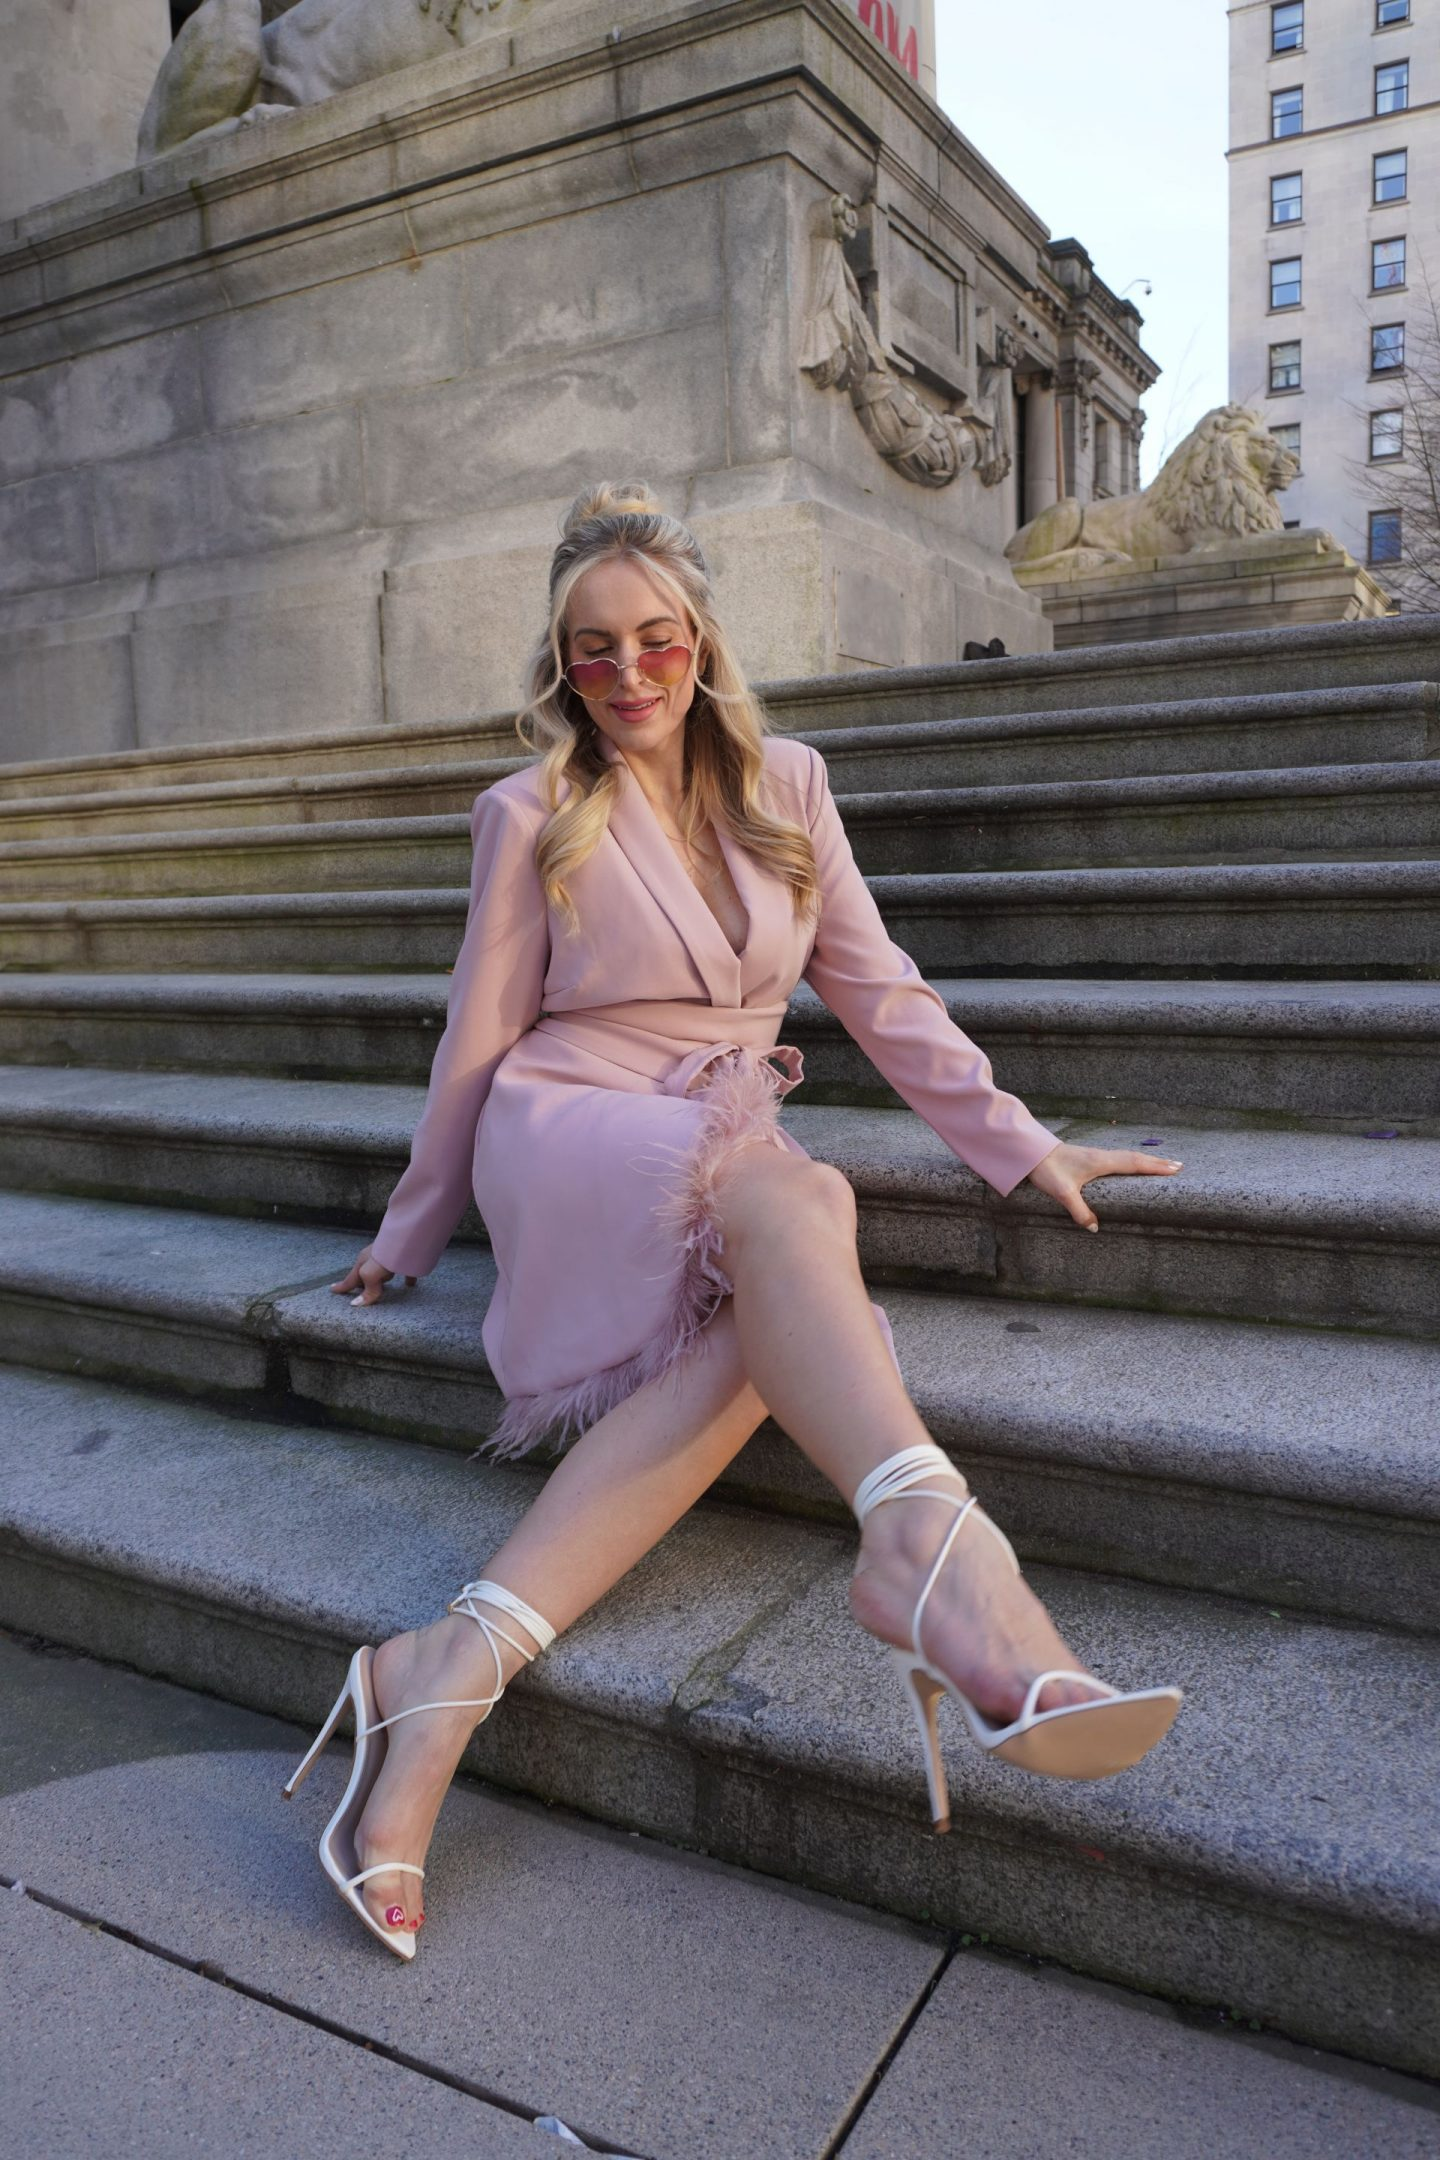 legallee blonde fashion blogger sitting on steps wearing a pink feather blazer dress